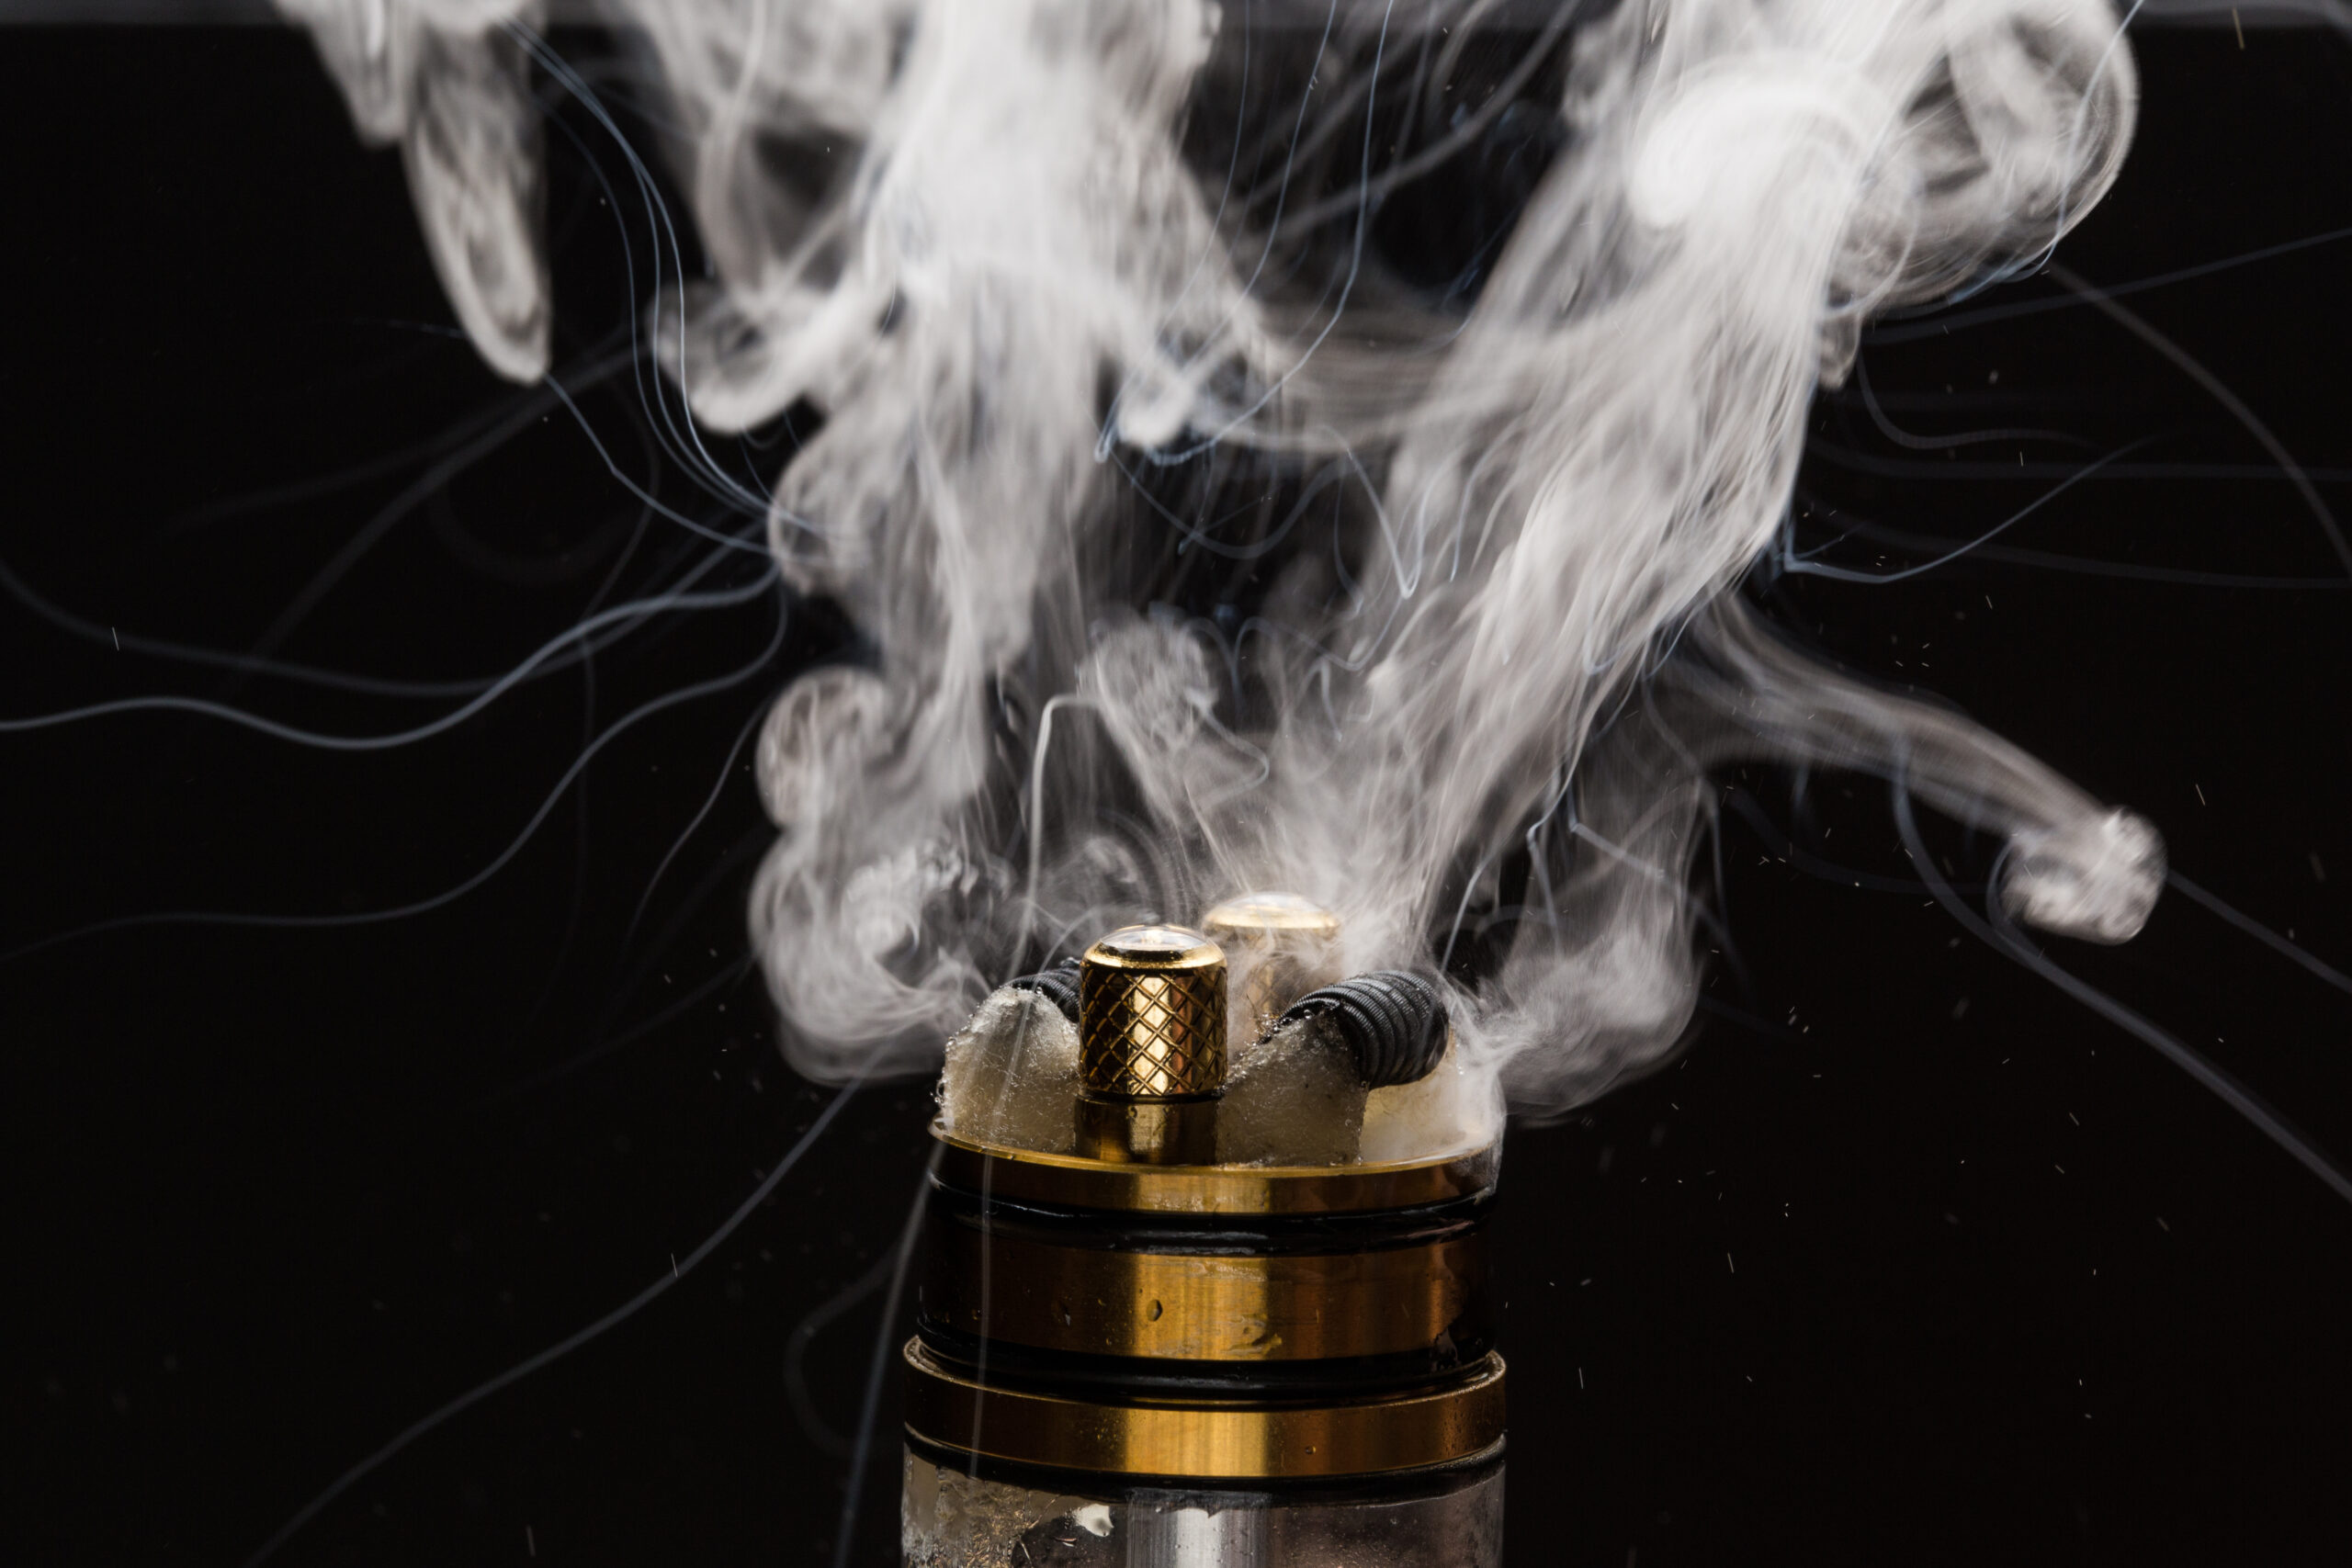 World Heart Federation calls for strict regulation of e-cigarettes and greater oversight of the industry's marketing and sales strategies